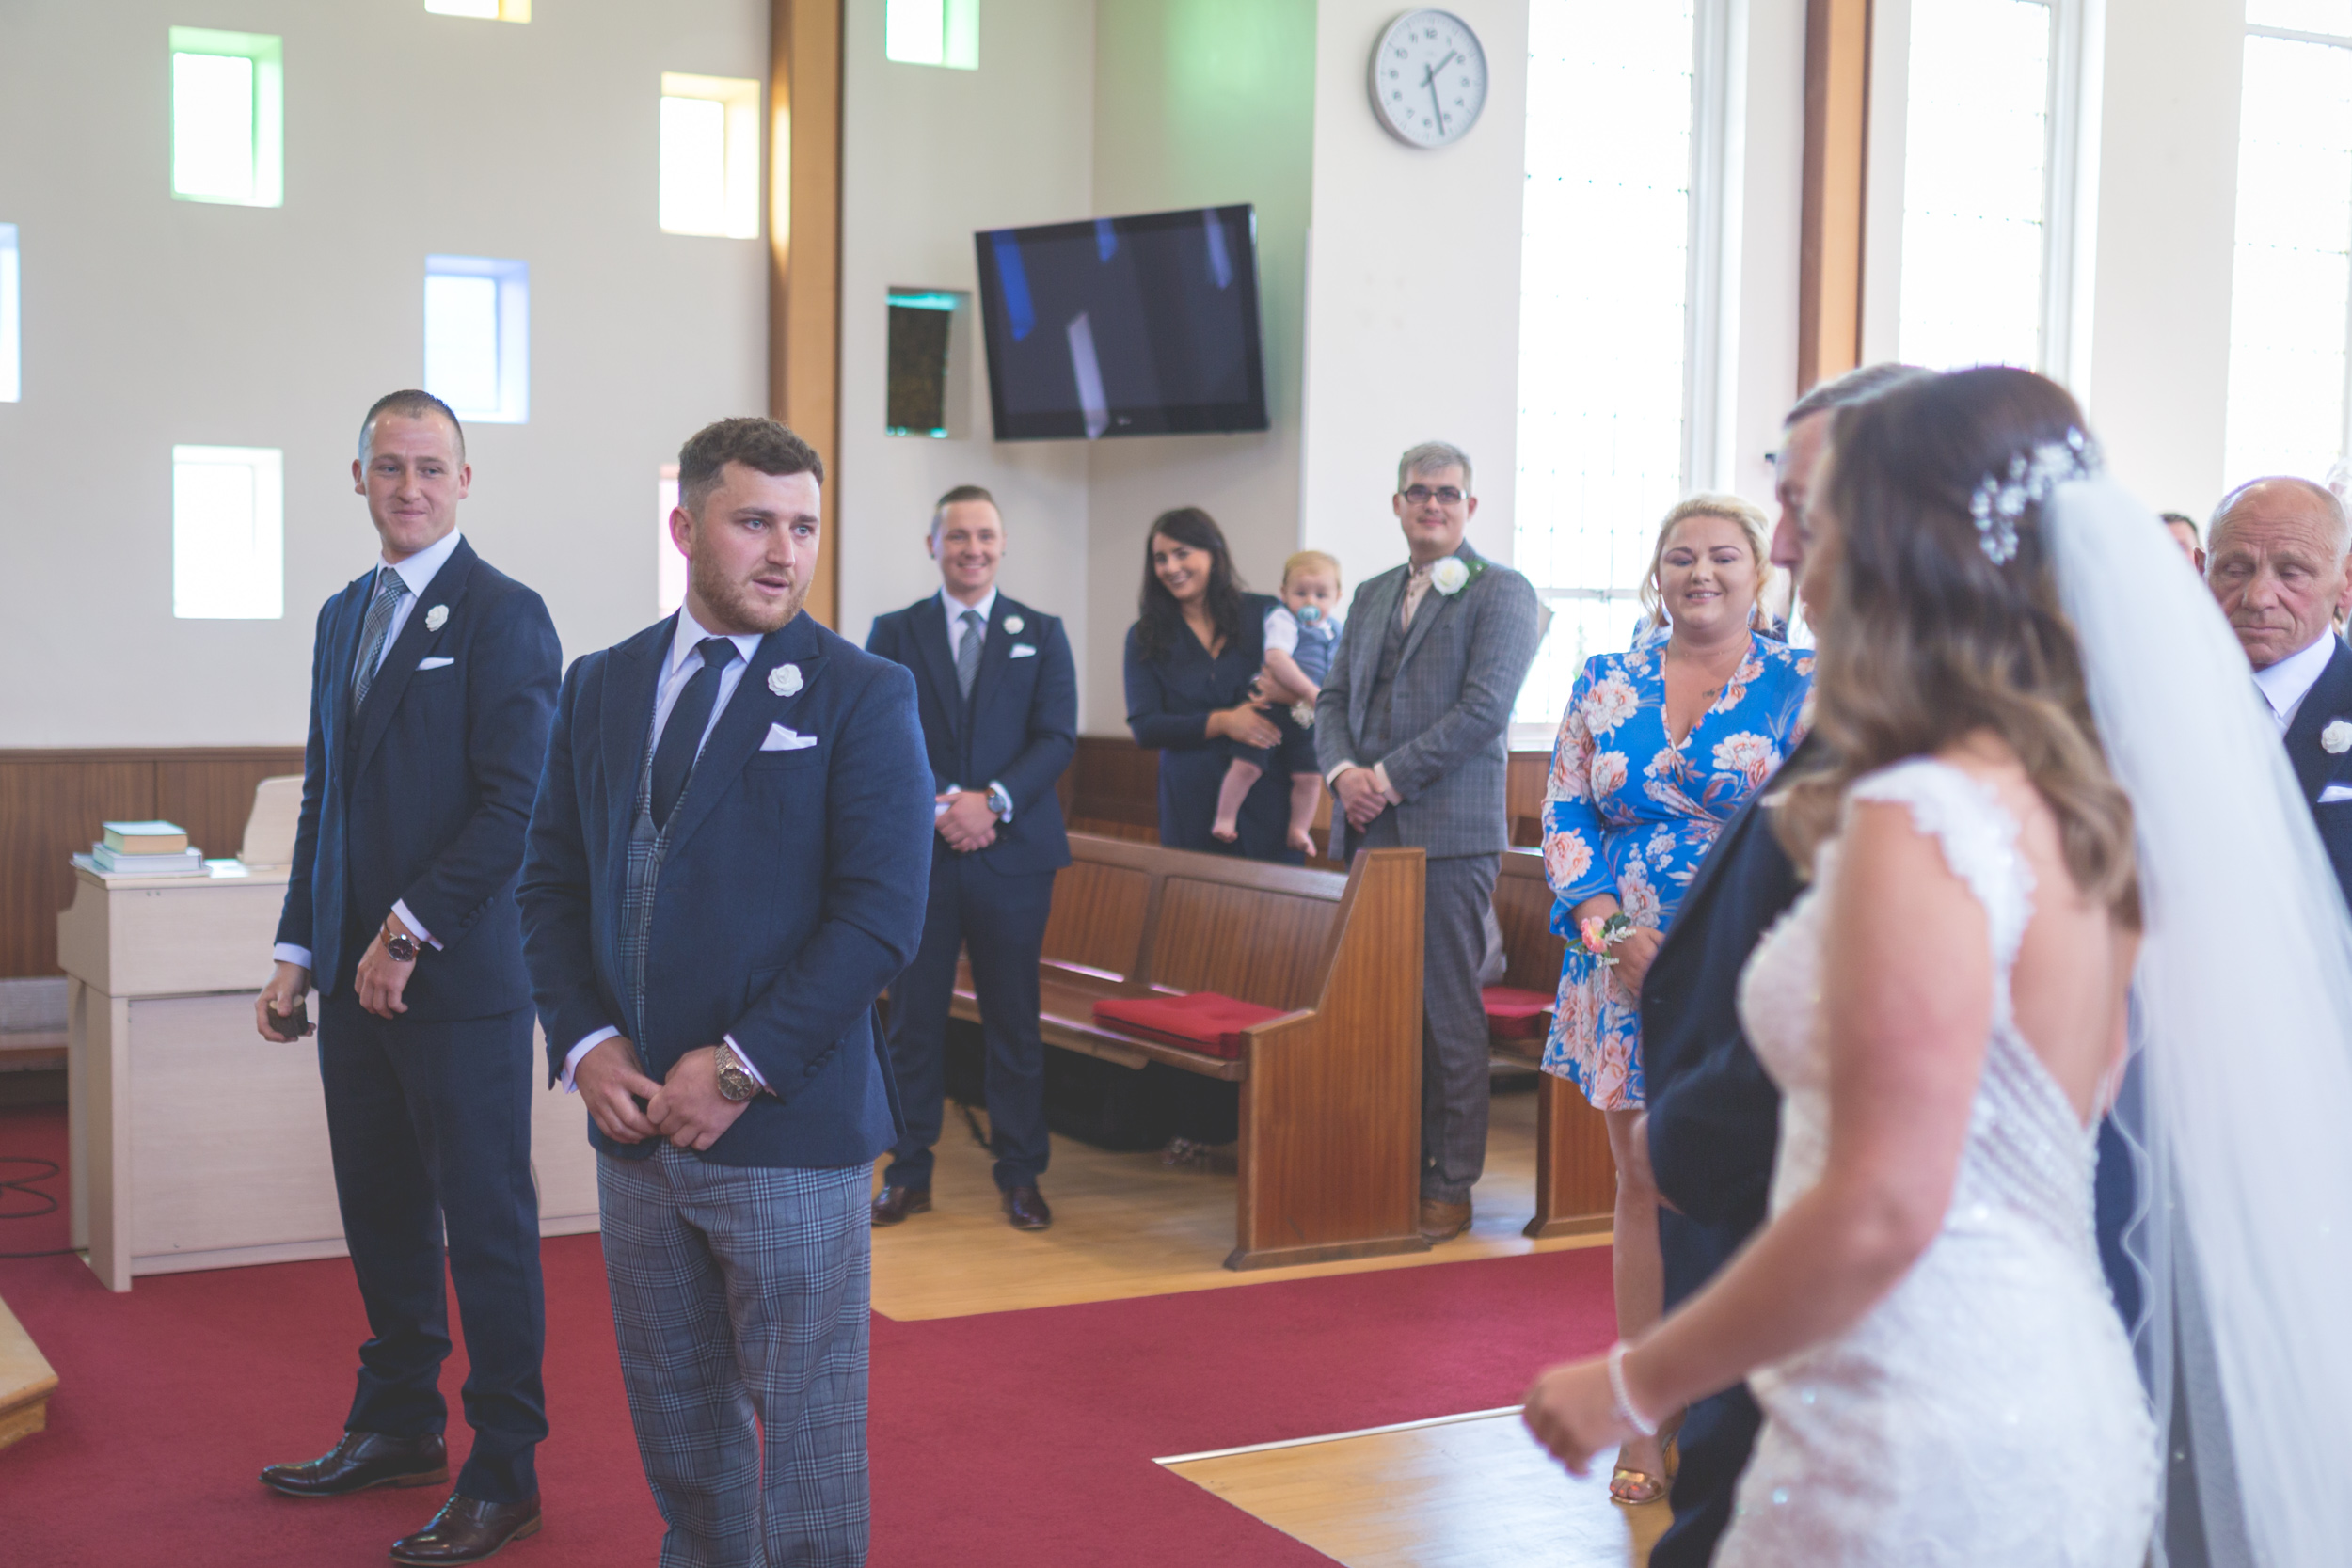 Brian McEwan | Northern Ireland Wedding Photographer | Rebecca & Michael | Ceremony-24.jpg